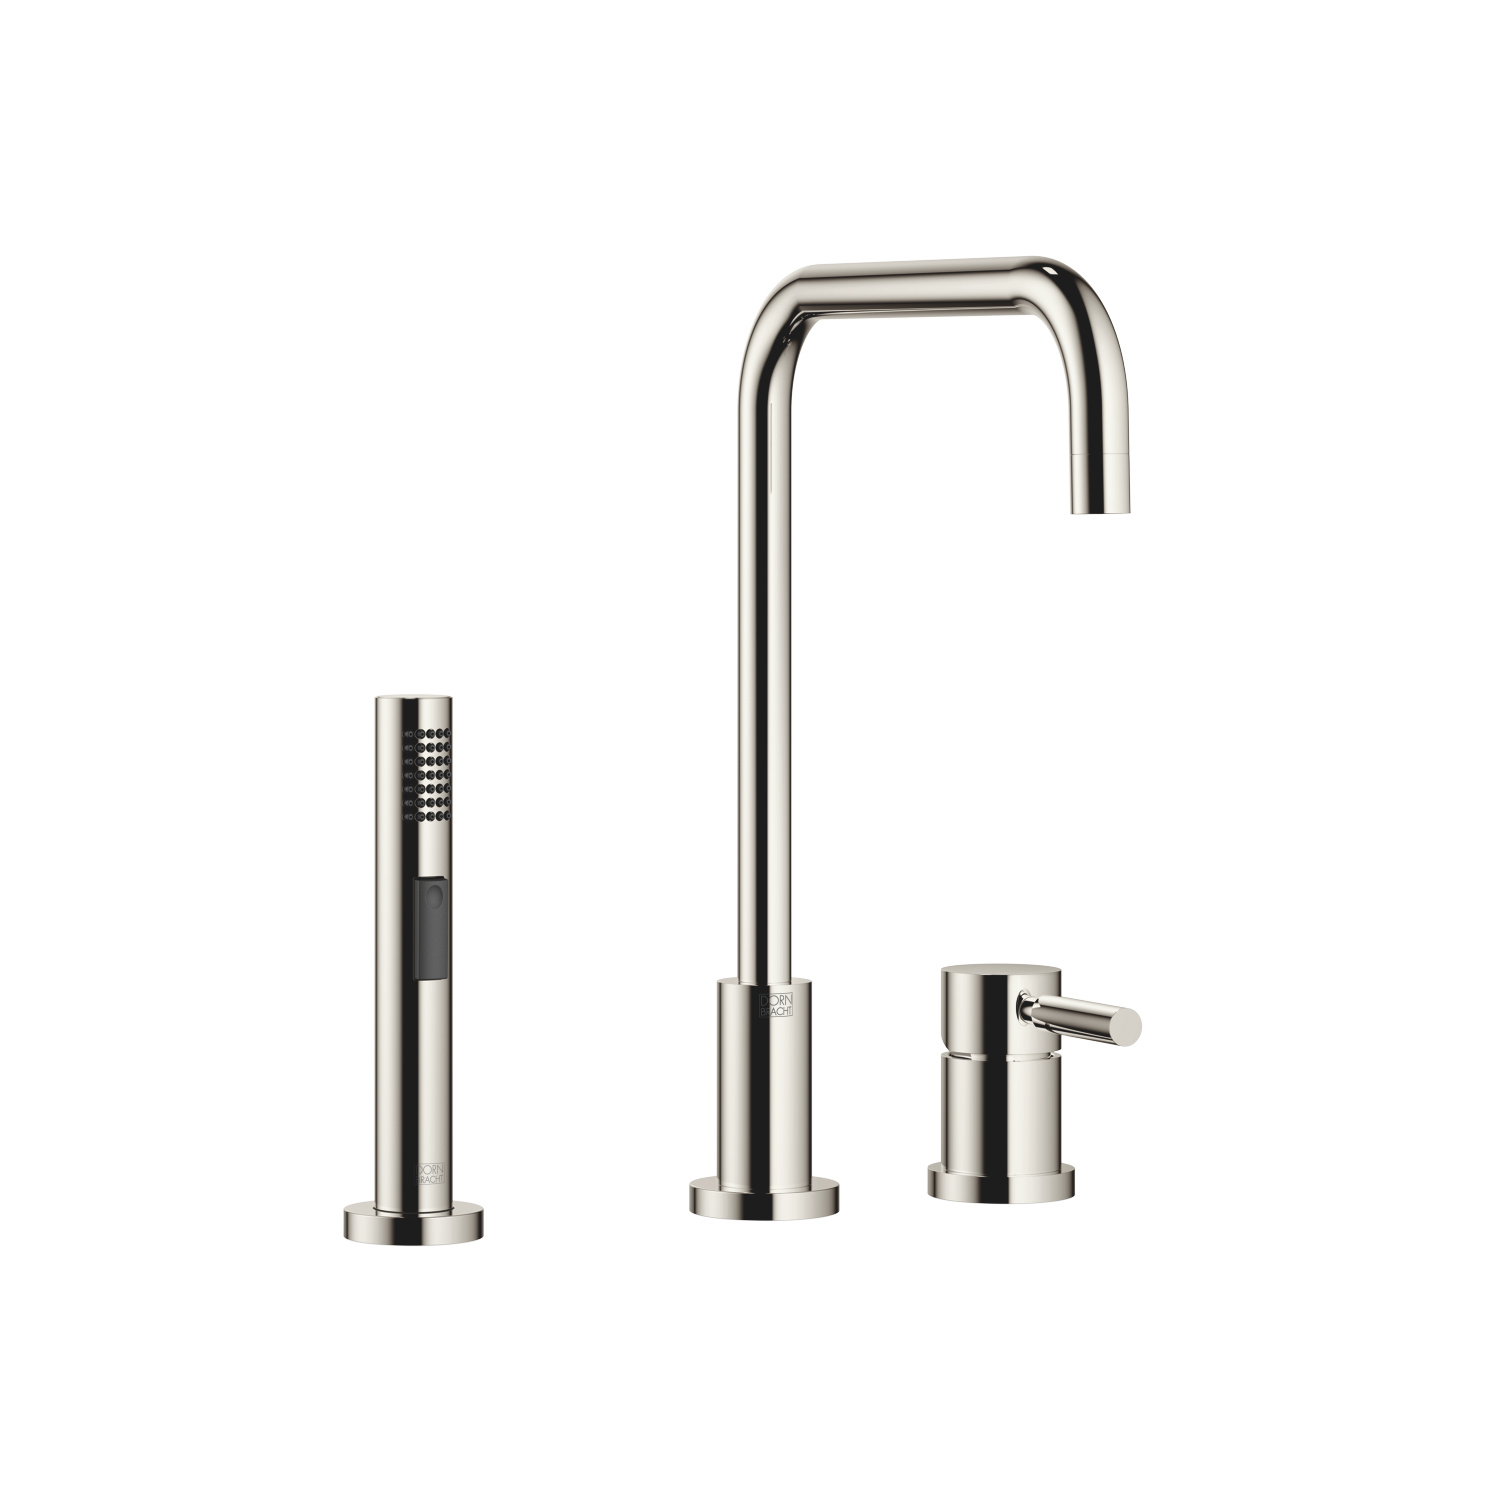 Two-hole mixer with individual rosettes with rinsing spray set - platinum